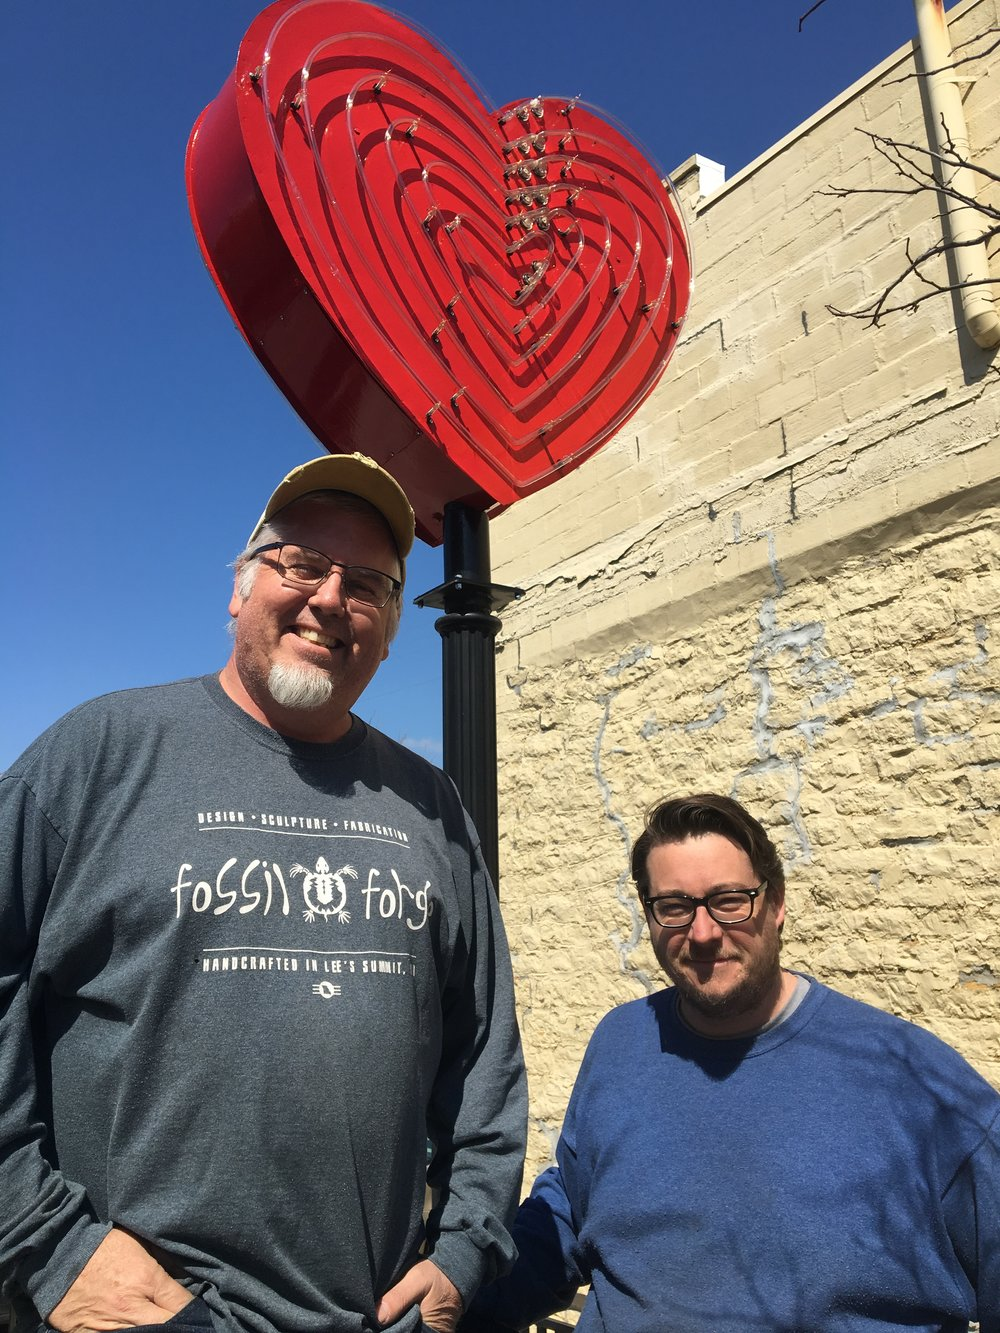 Dave Eames and Ben Wine, of Fossil Forge Design, worked to restore the Hartley Heart — an icon of the downtown Lee's Summit district.